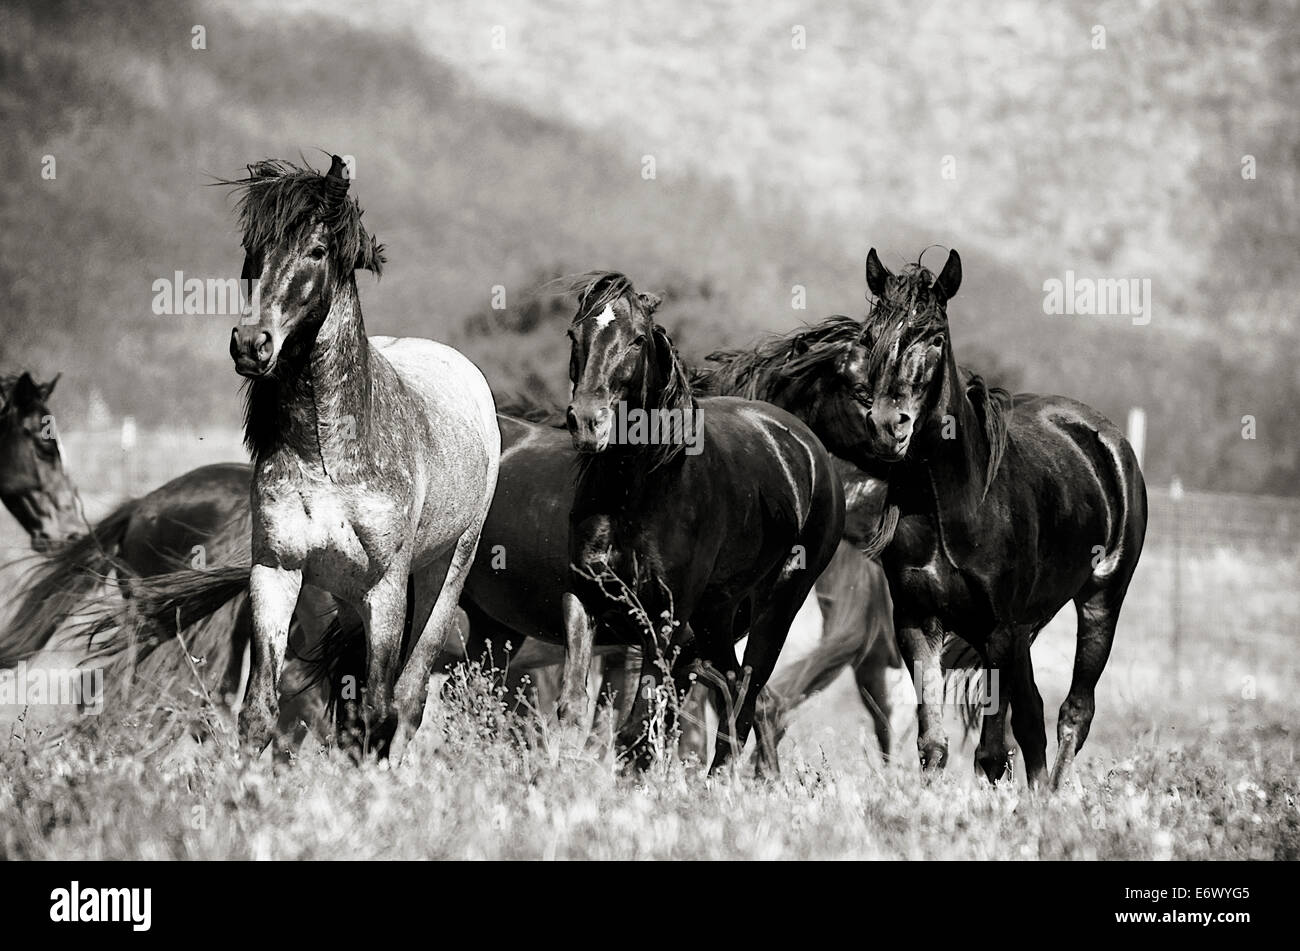 Black And White Image Of A Herd Of Wild Mustangs At Return To Freedom Stock Photo Alamy